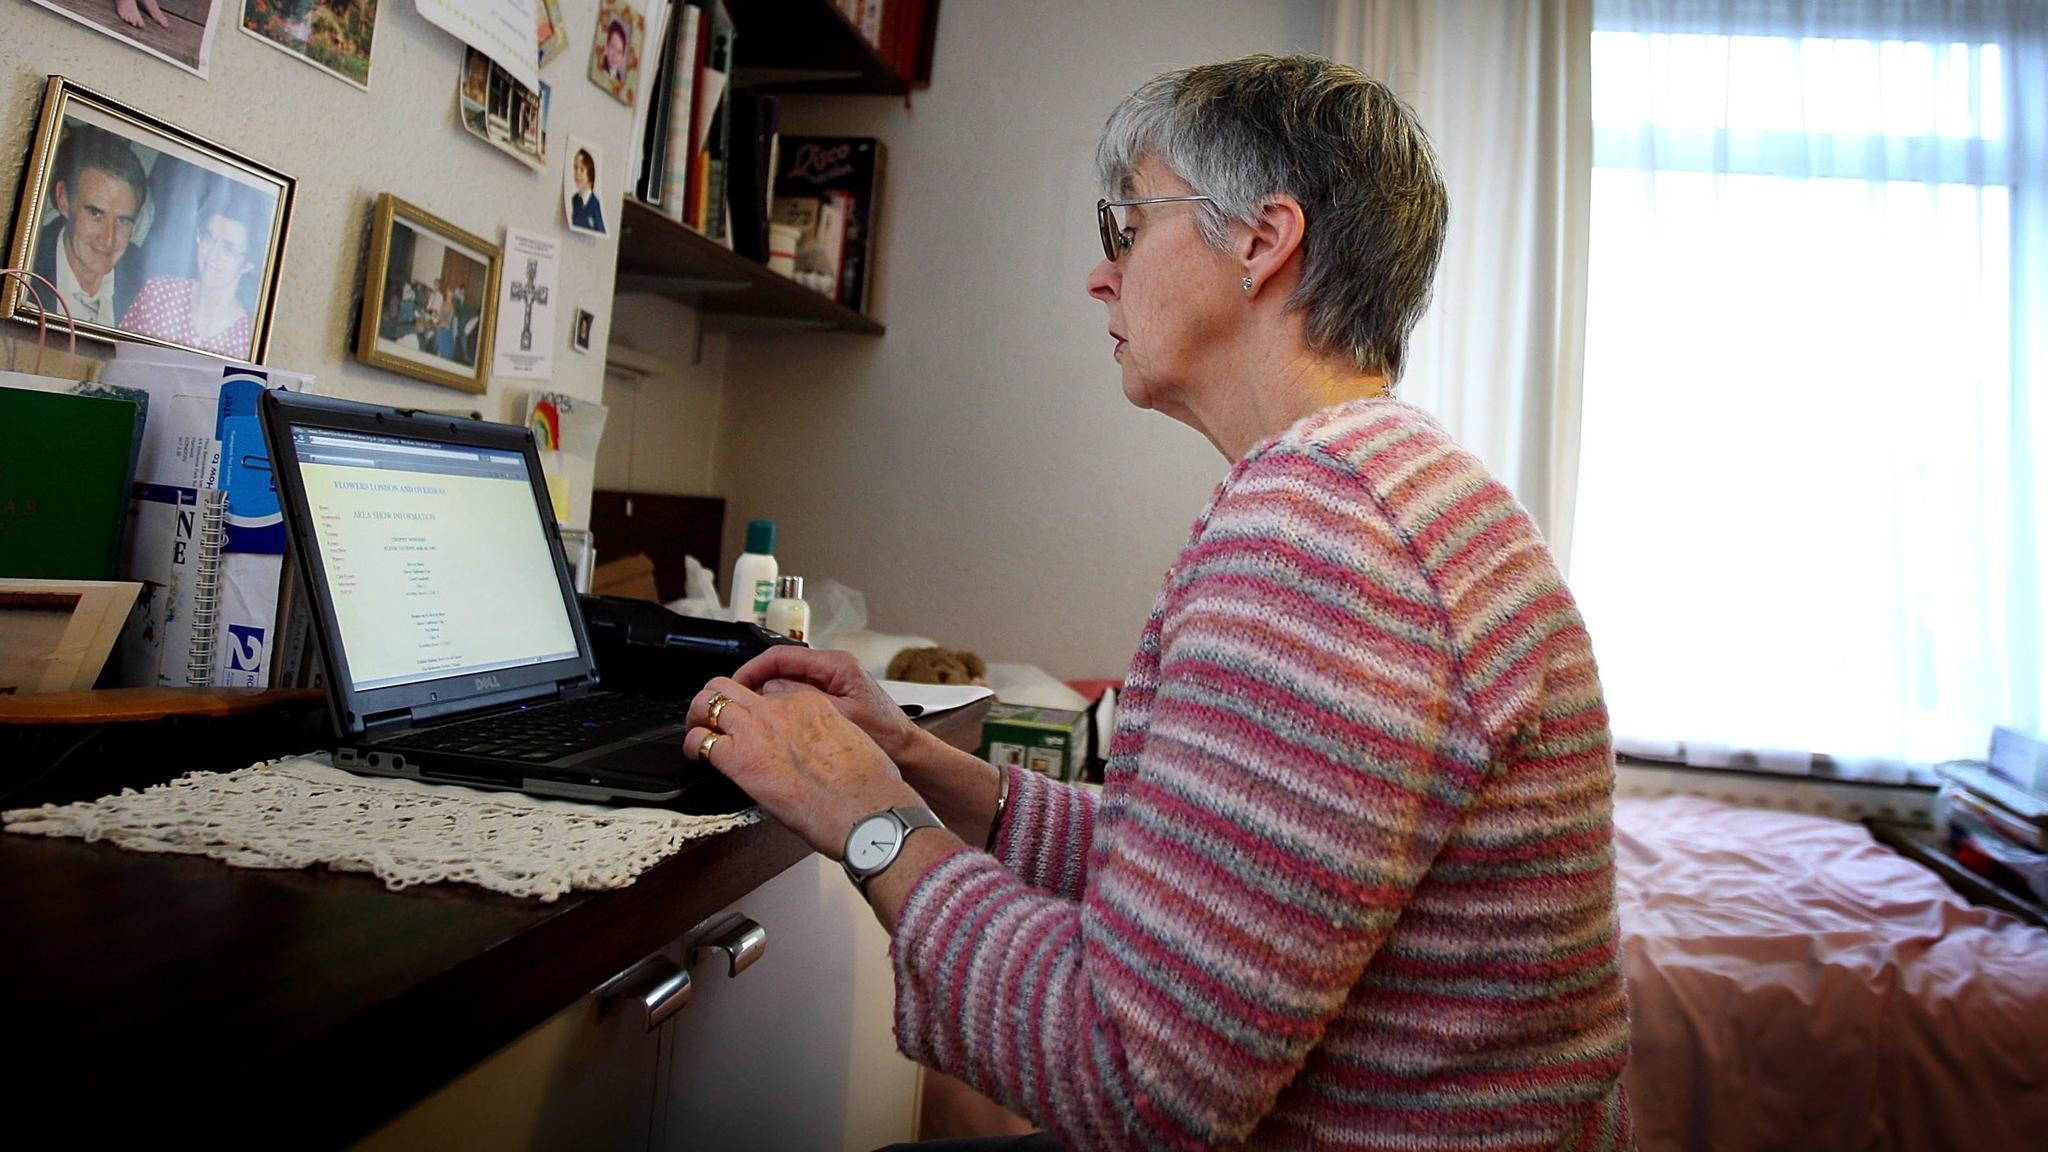 The Silver Economy: Hurdles remain for boomers yet to get online